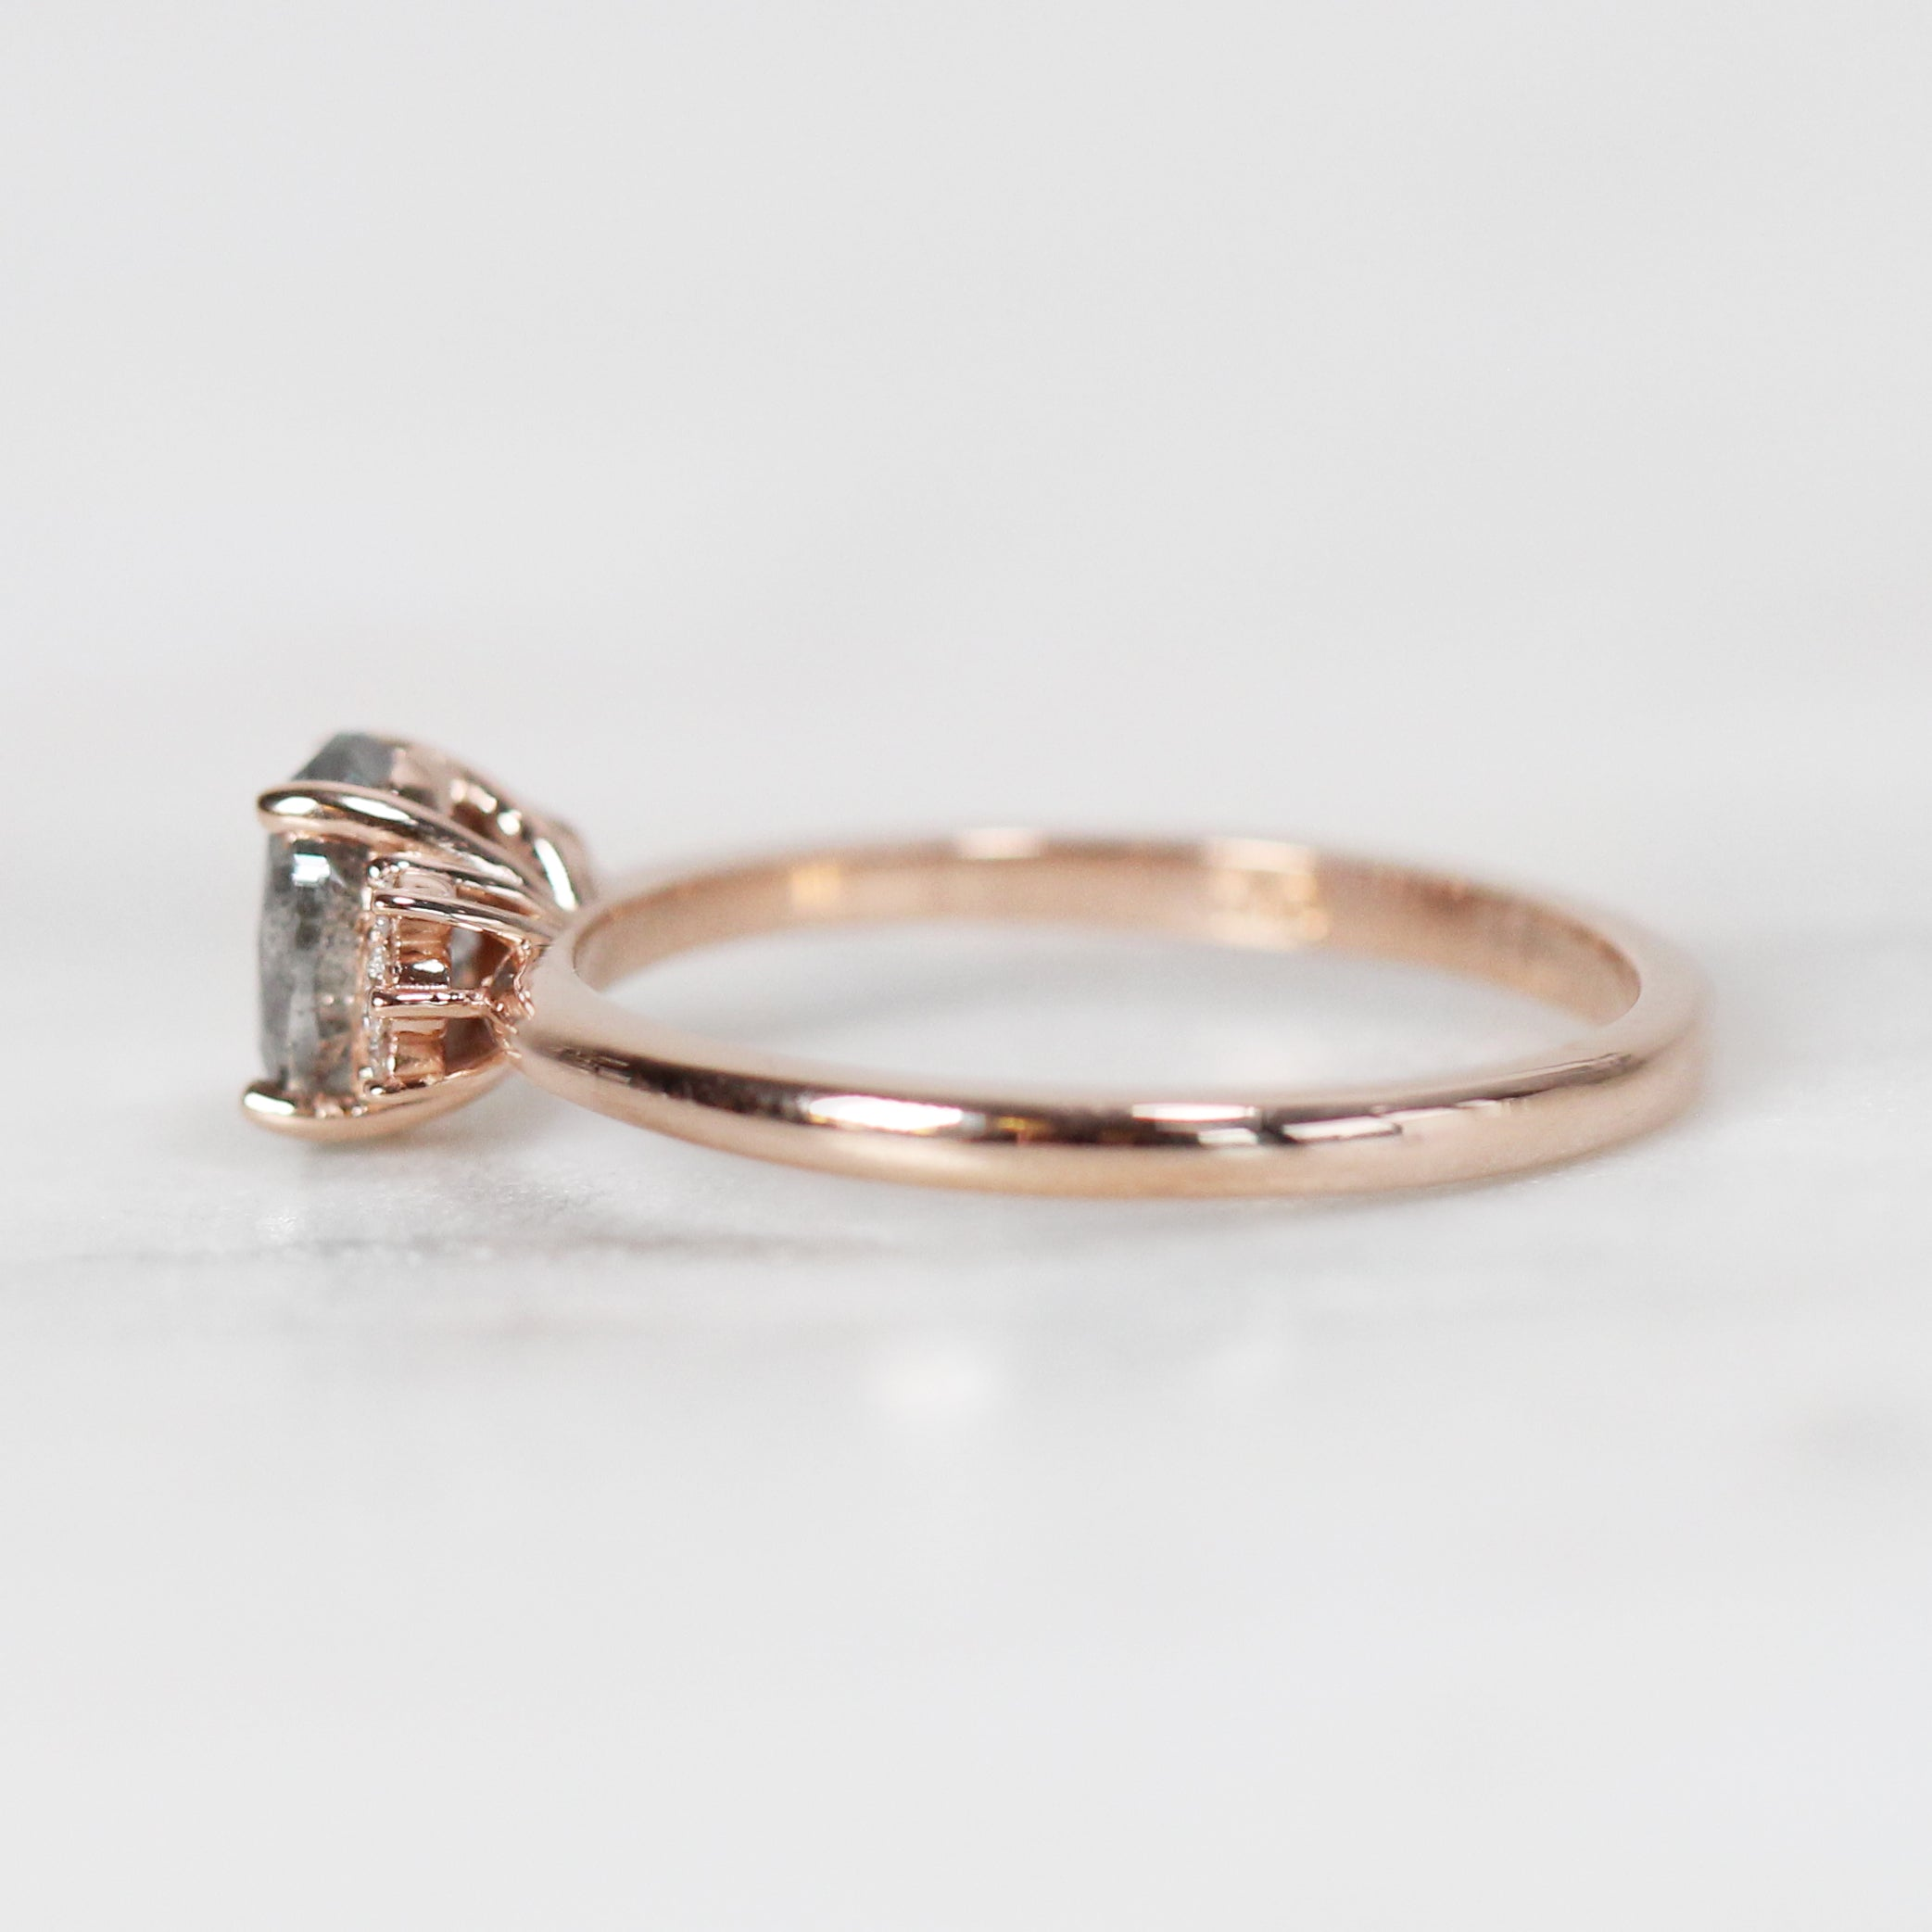 Laura Ring with 1.02 ct Brilliant Oval Celestial Diamond® in 10k Rose Gold-Ready to Size and Ship - Celestial Diamonds ® by Midwinter Co.